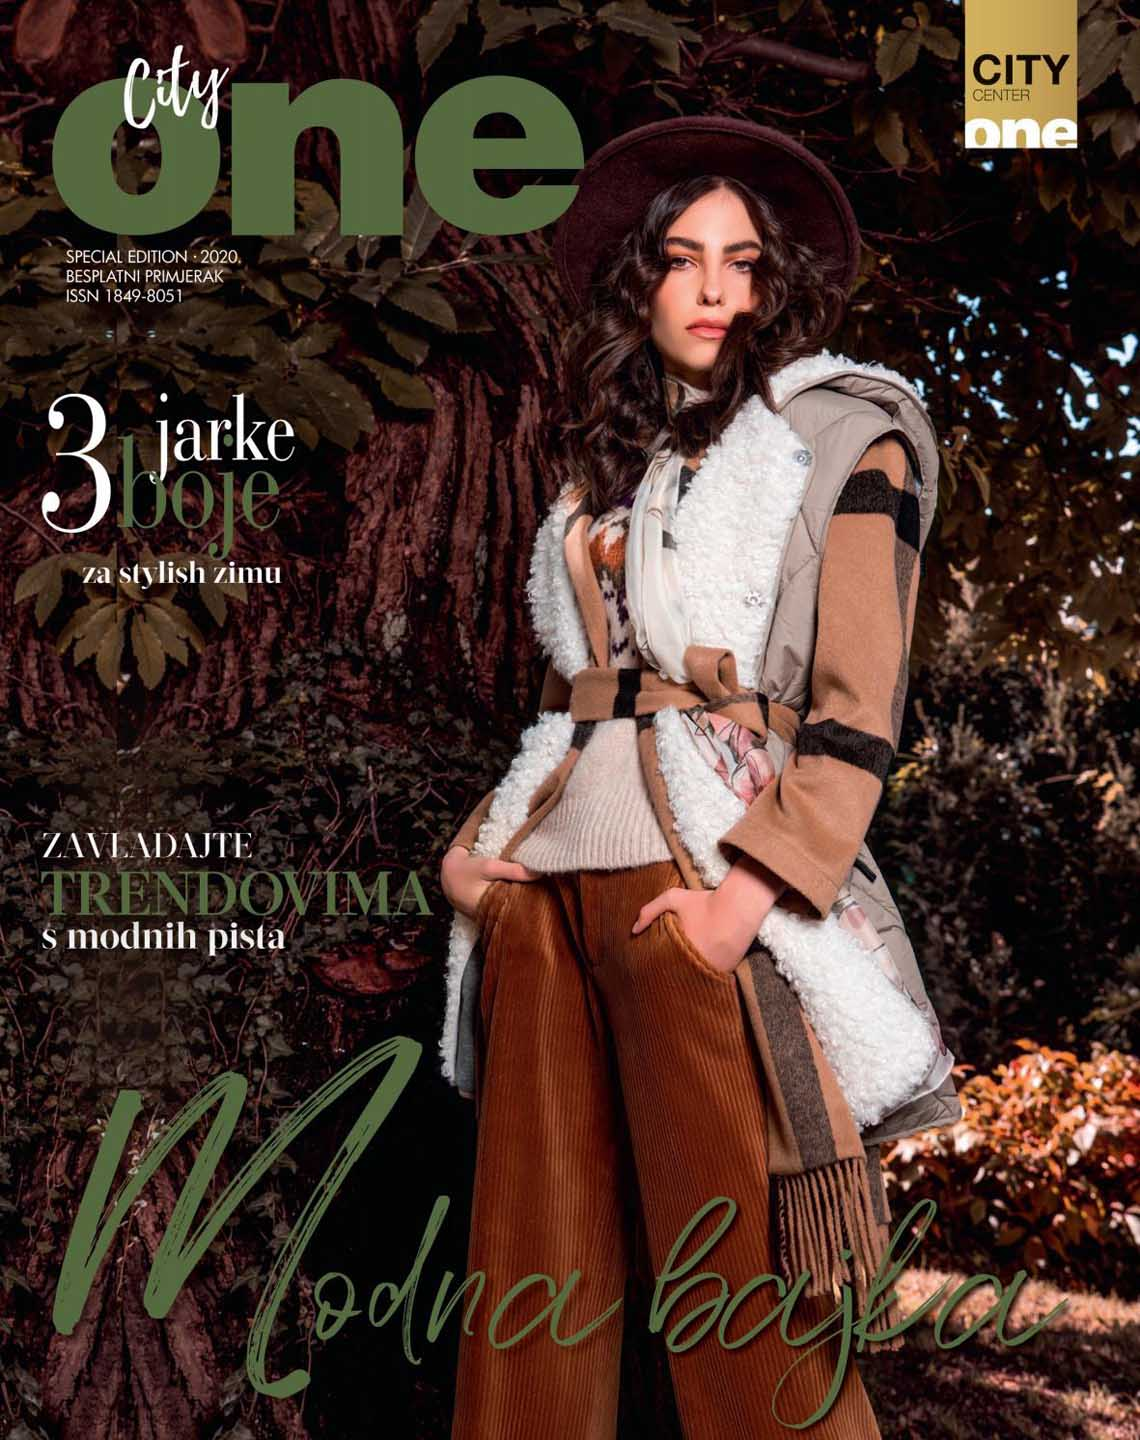 CITY ONE MAGAZIN - SPECIAL EDITION 2020